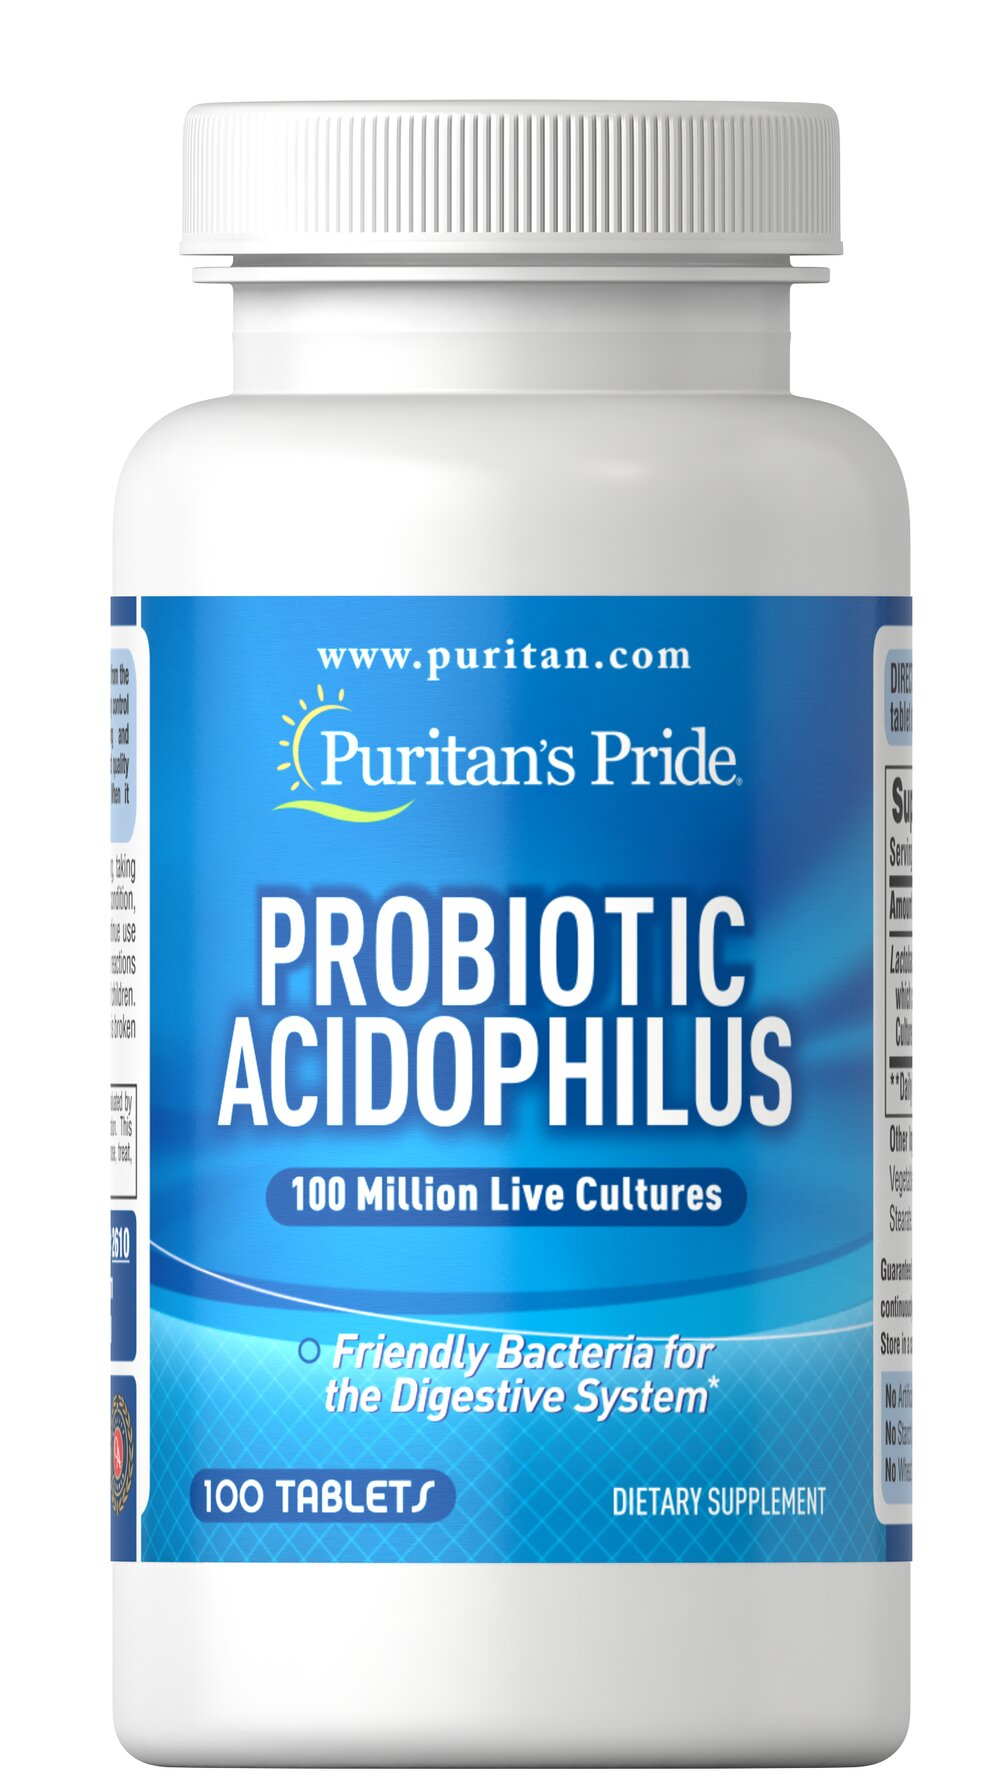 Probiotic Acidophilus <p>Acidophilus supports a favorable environment for the absorption of nutrients, encourages intestinal microflora balance, and promotes the healthy functioning of the intestinal system.** Our Probiotic Acidophilus contains over 100 million active Lactobacillus Acidophilus (including the naturally occurring metabolic product produced by Lactobacilli) at the time of manufacture.</p> 100 Capsules  $7.99